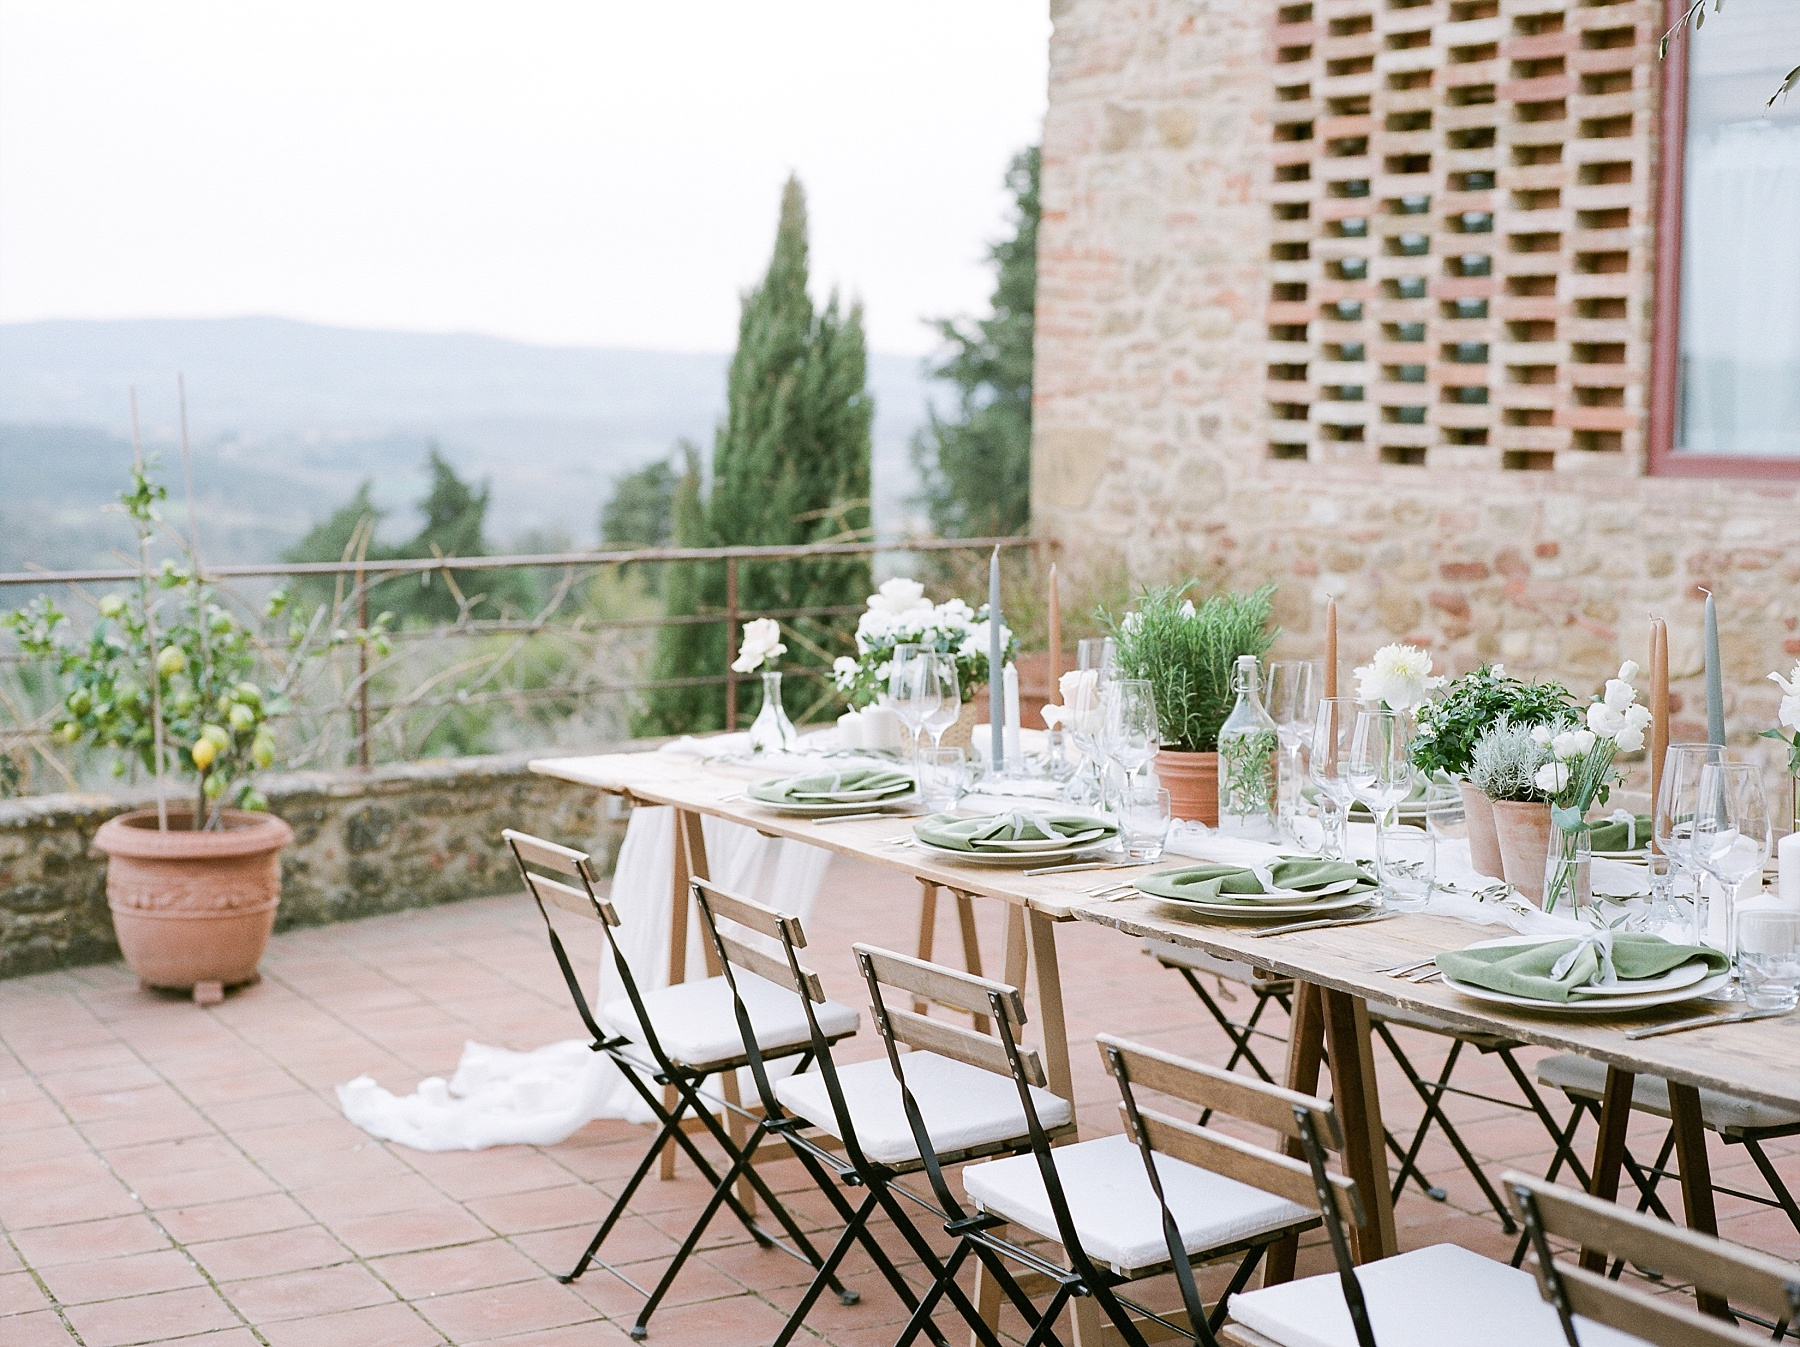 All White Destination Wedding in the Hills of Tuscany Italy at Estate Borgo Petrognano by Kelsi Kliethermes Photography_0021.jpg